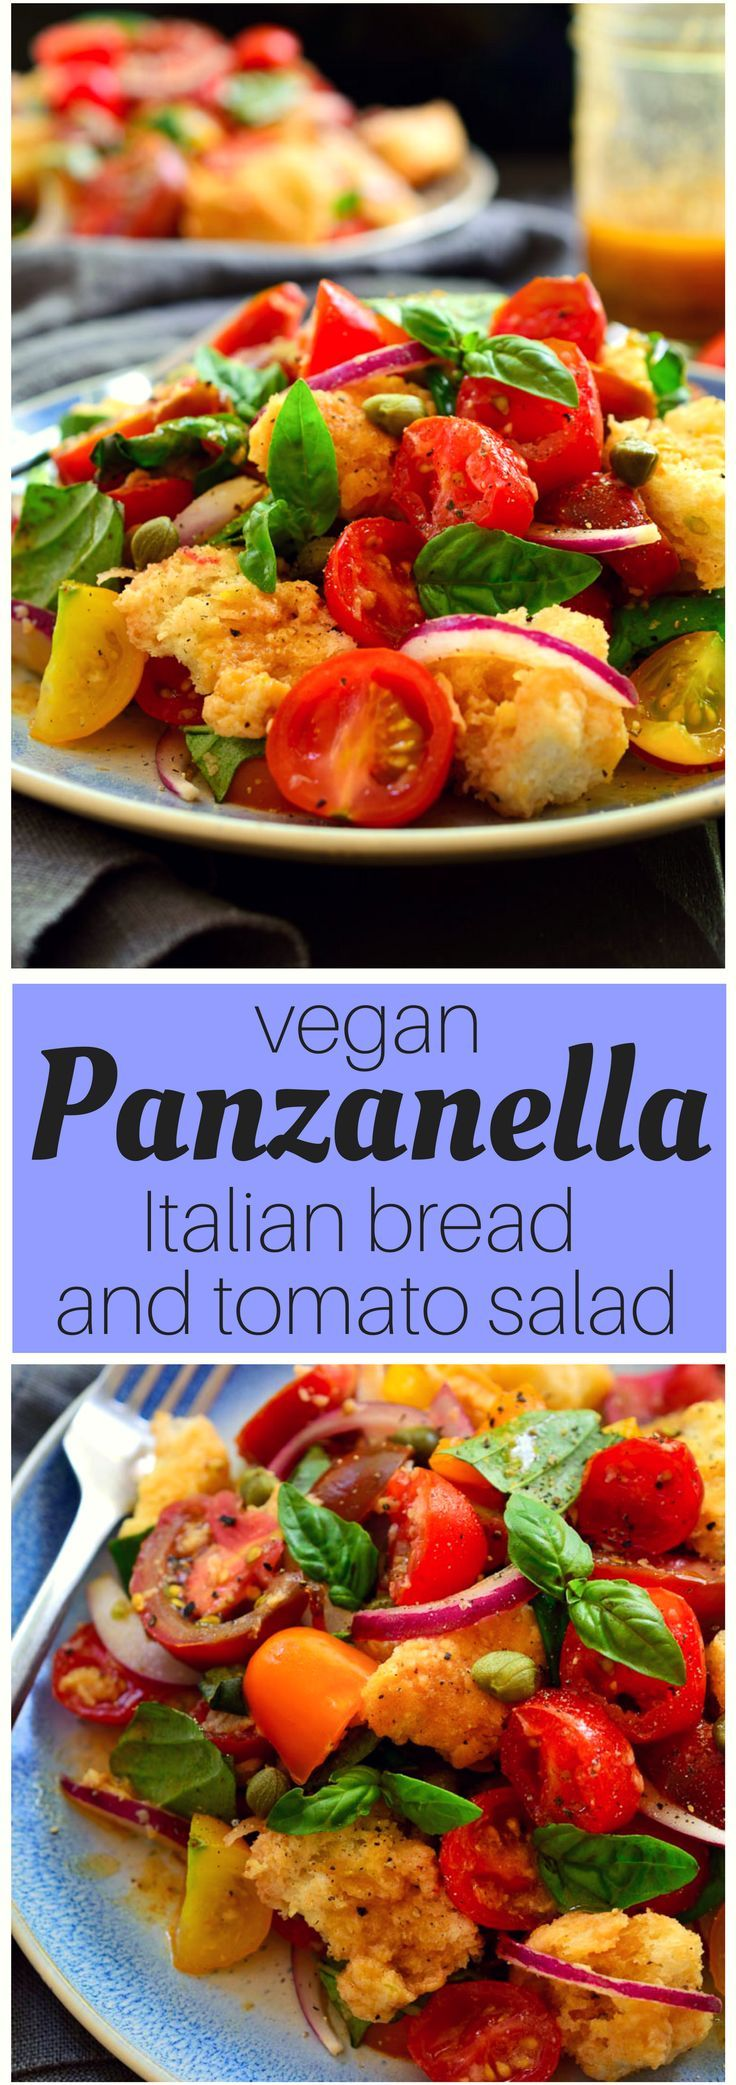 Panzanella is a simple, rustic Italian bread and tomato salad that bursts with flavour despite its humble ingredients. Fresh tomatoes, basil, red onion and day-old bread in a tangy, umami (thanks to an unusual ingredient) vinaigrette are all you need to enjoy this bright and colourful salad!